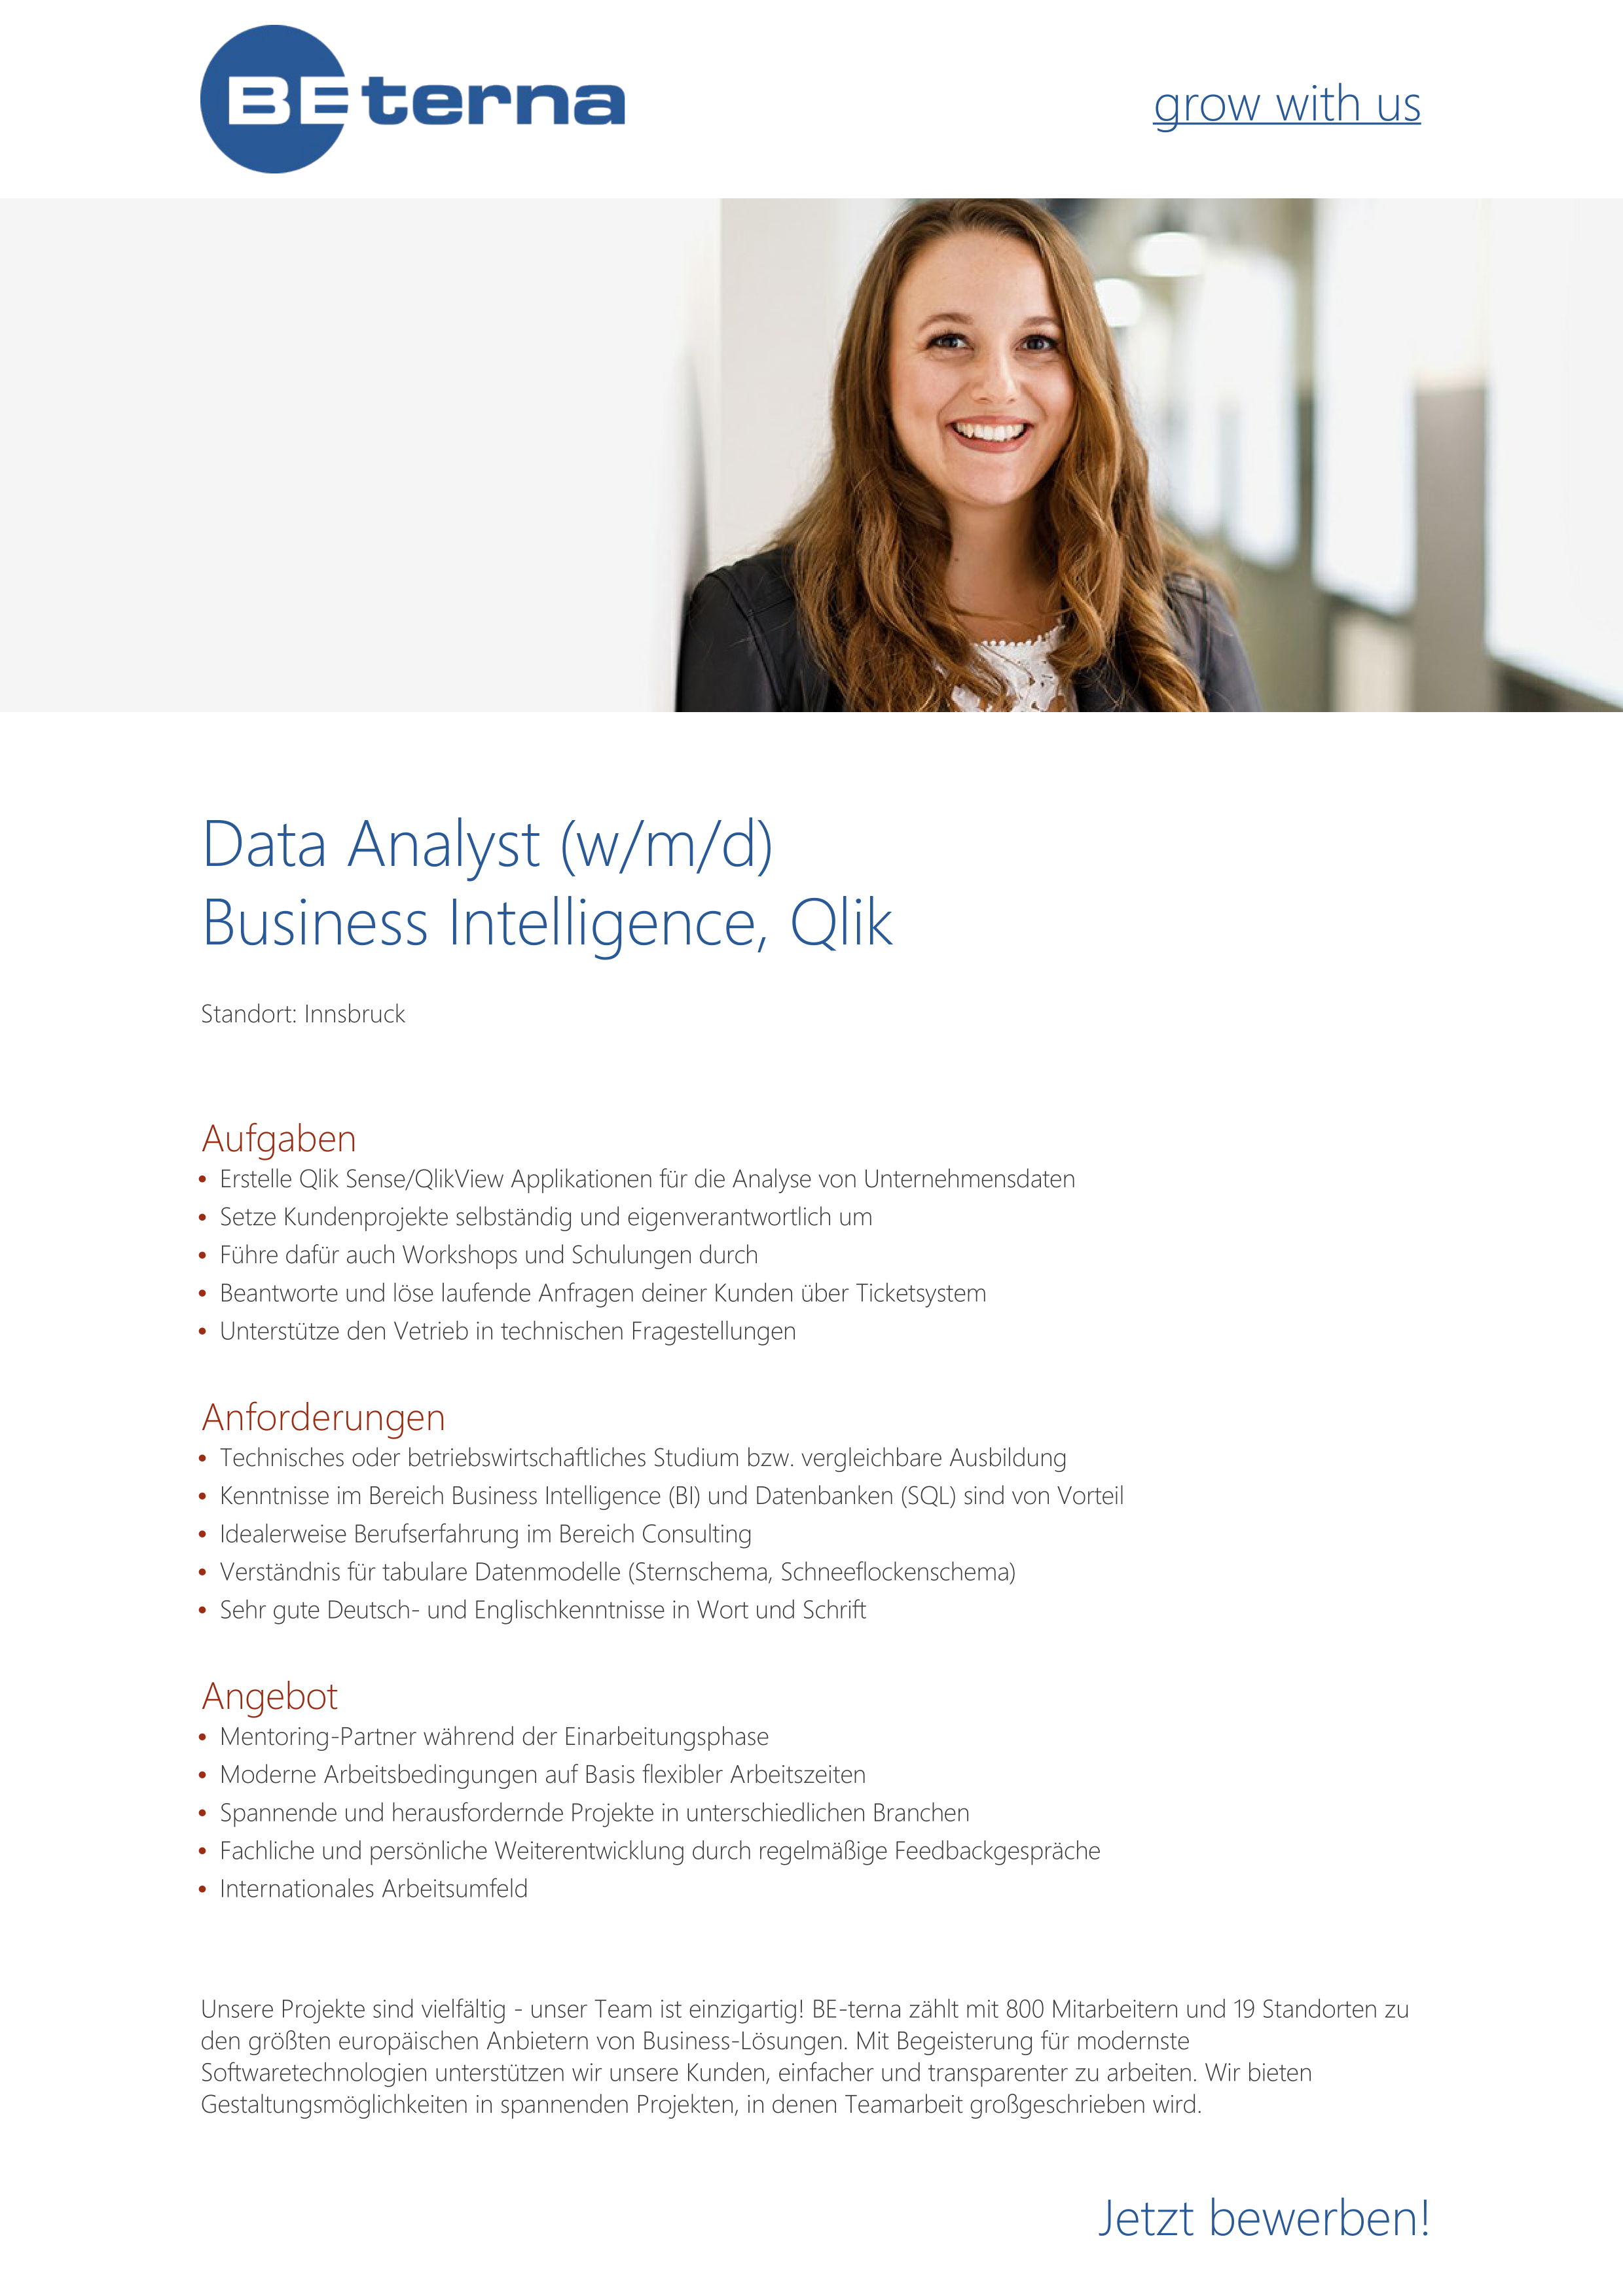 Data Analyst (w/m/d), Business Intelligence, Qlik